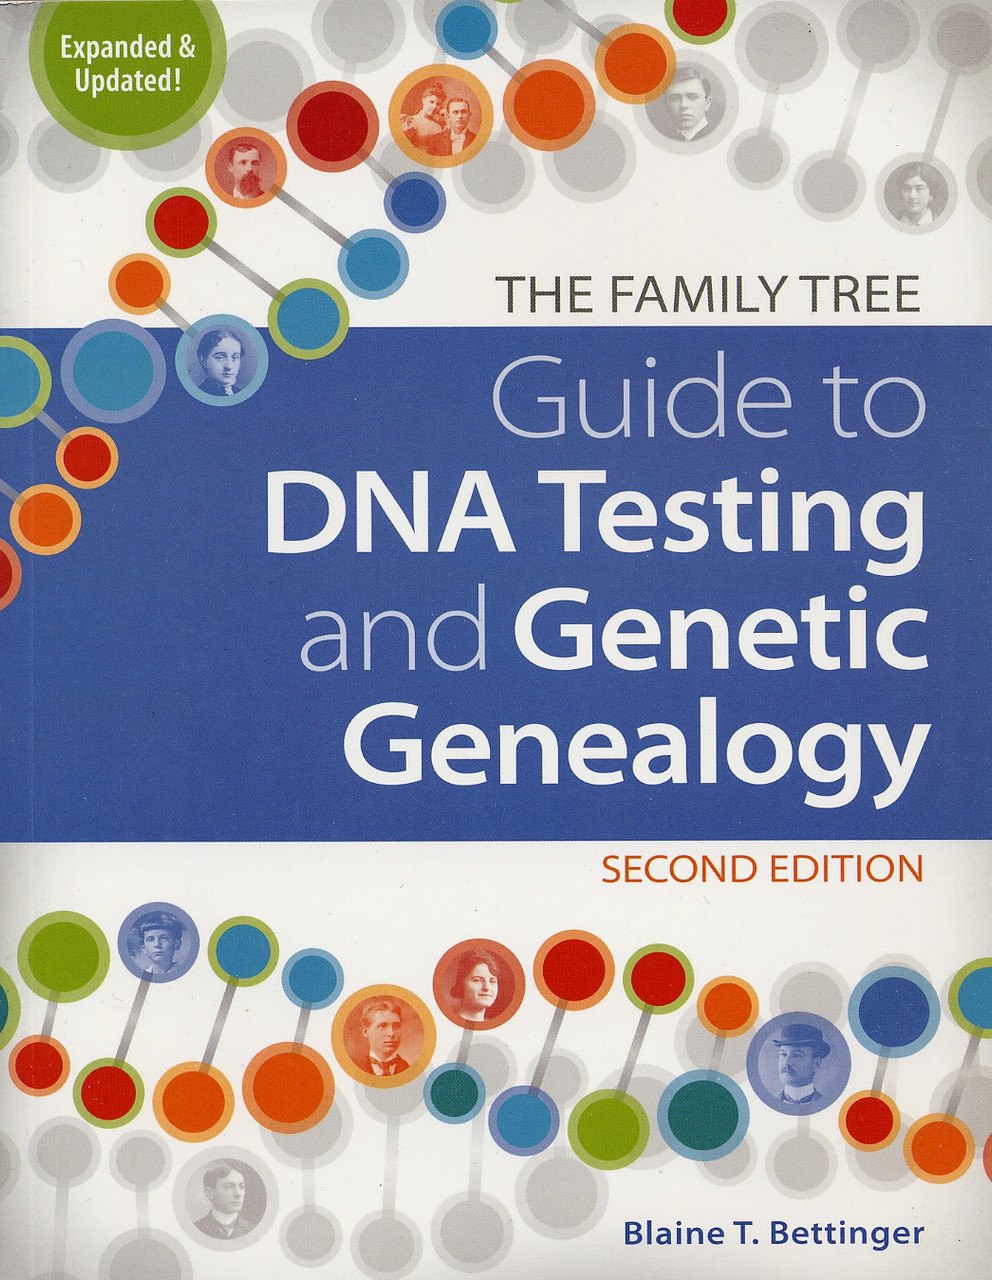 The Family Tree Guide to DNA Testing and Genetic Genealogy (2nd edition)